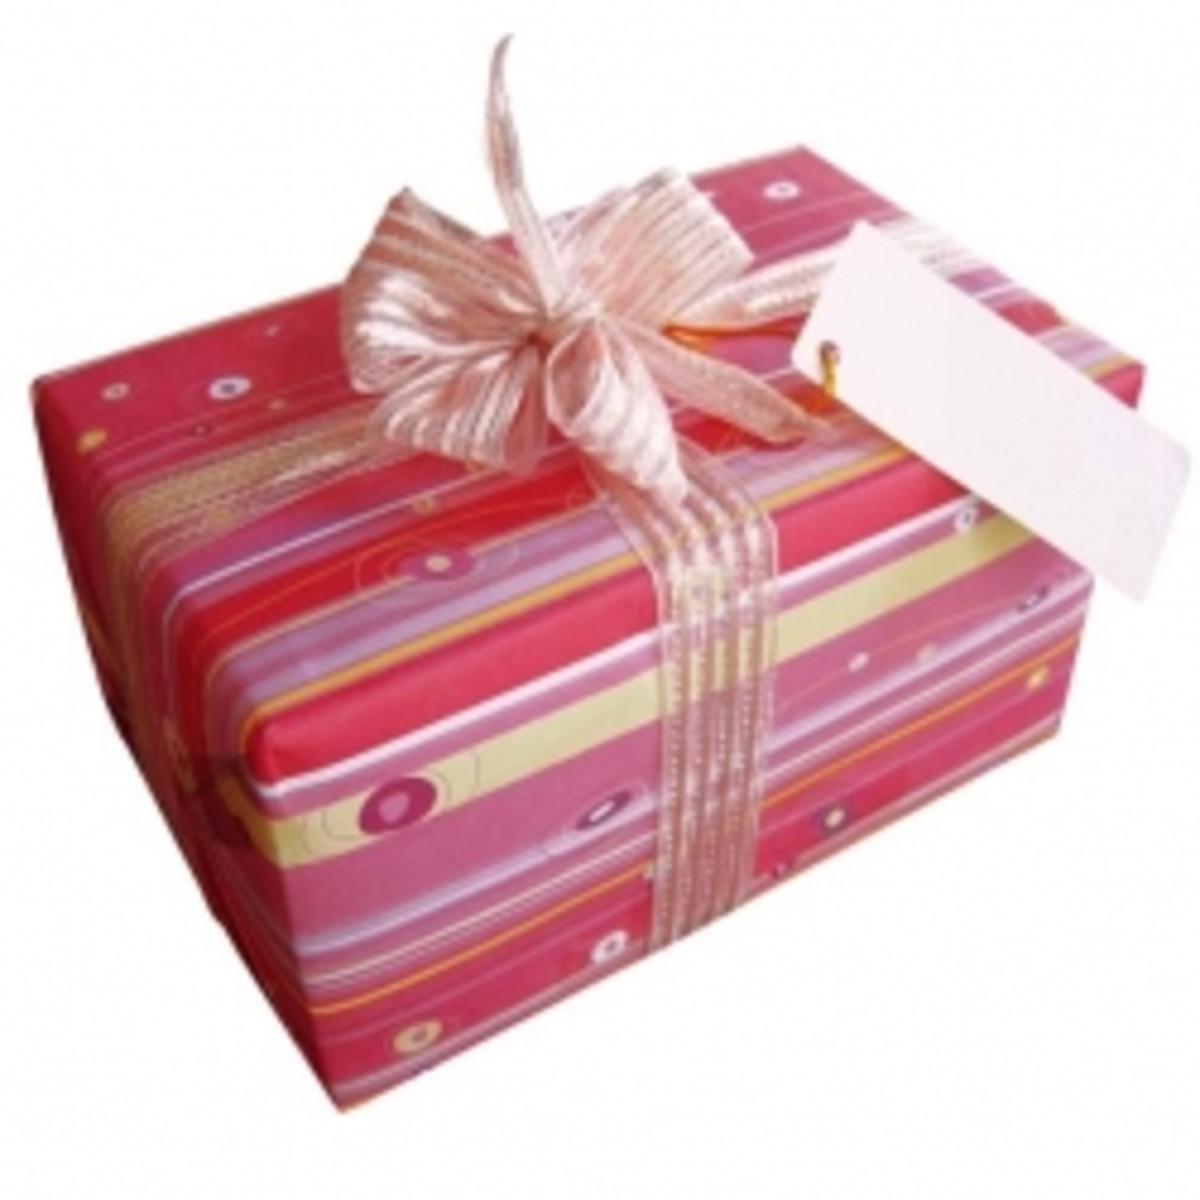 gifts for homeless children hubpages